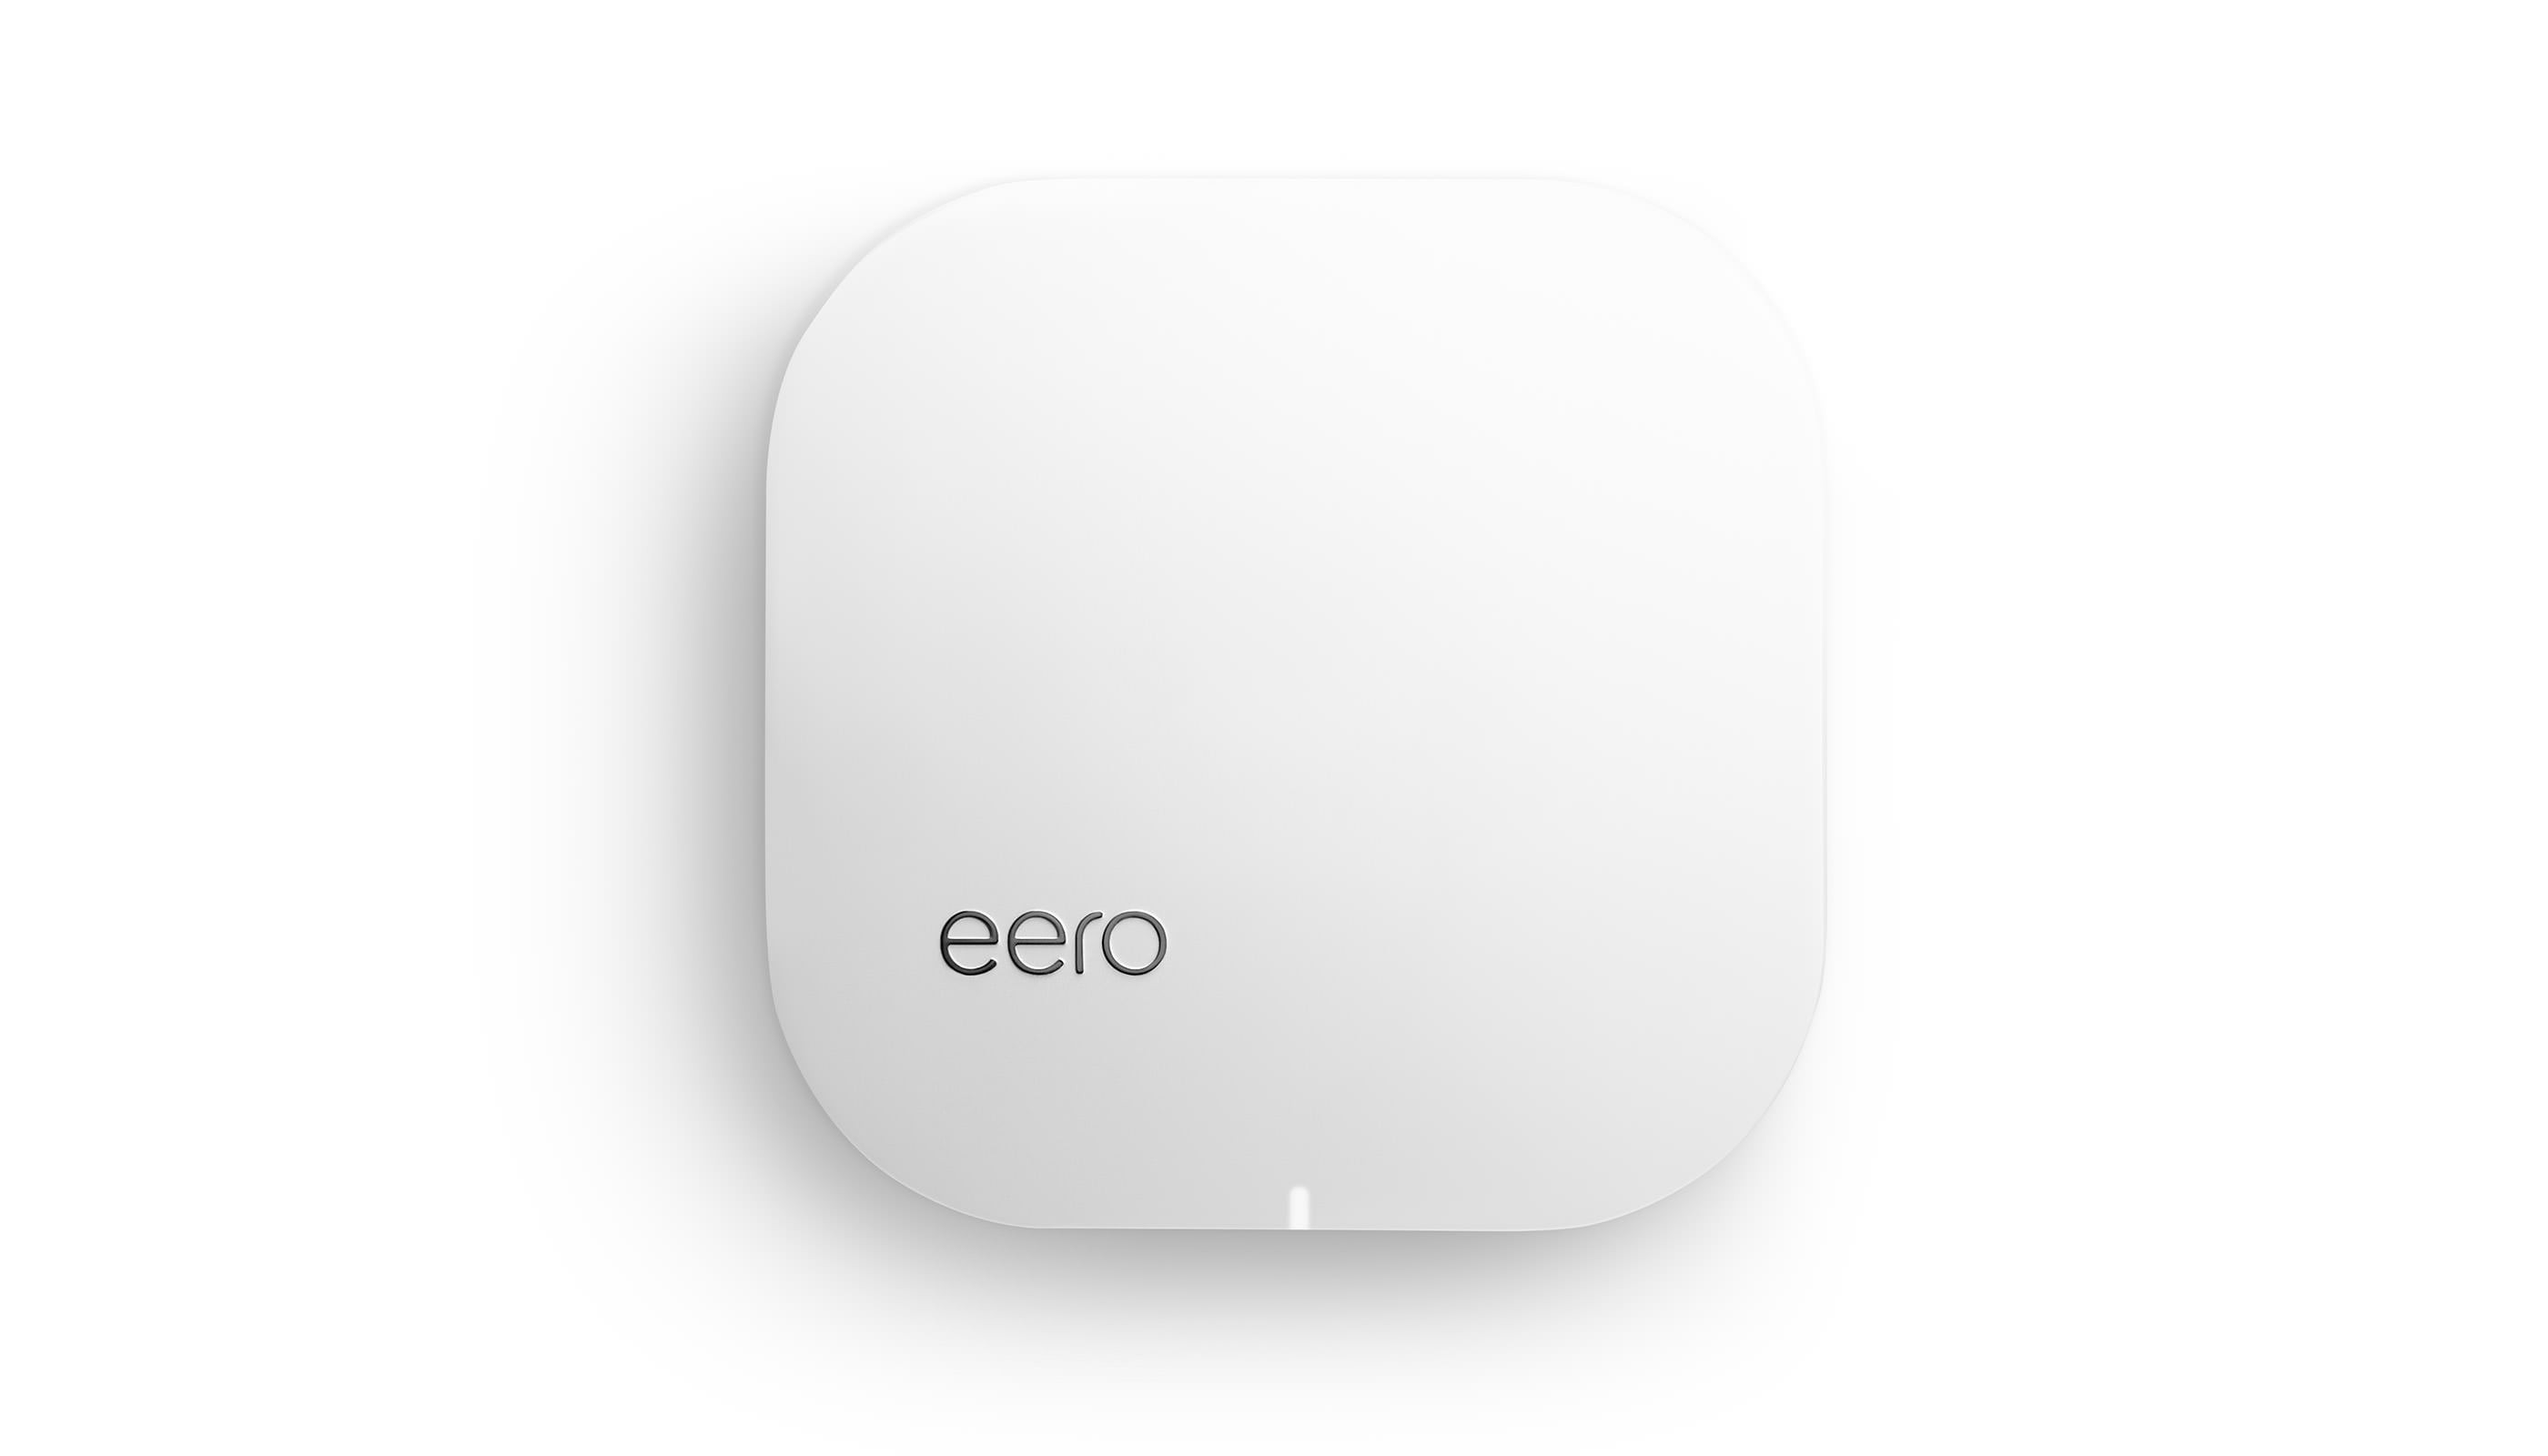 Eero, the future Wifi system